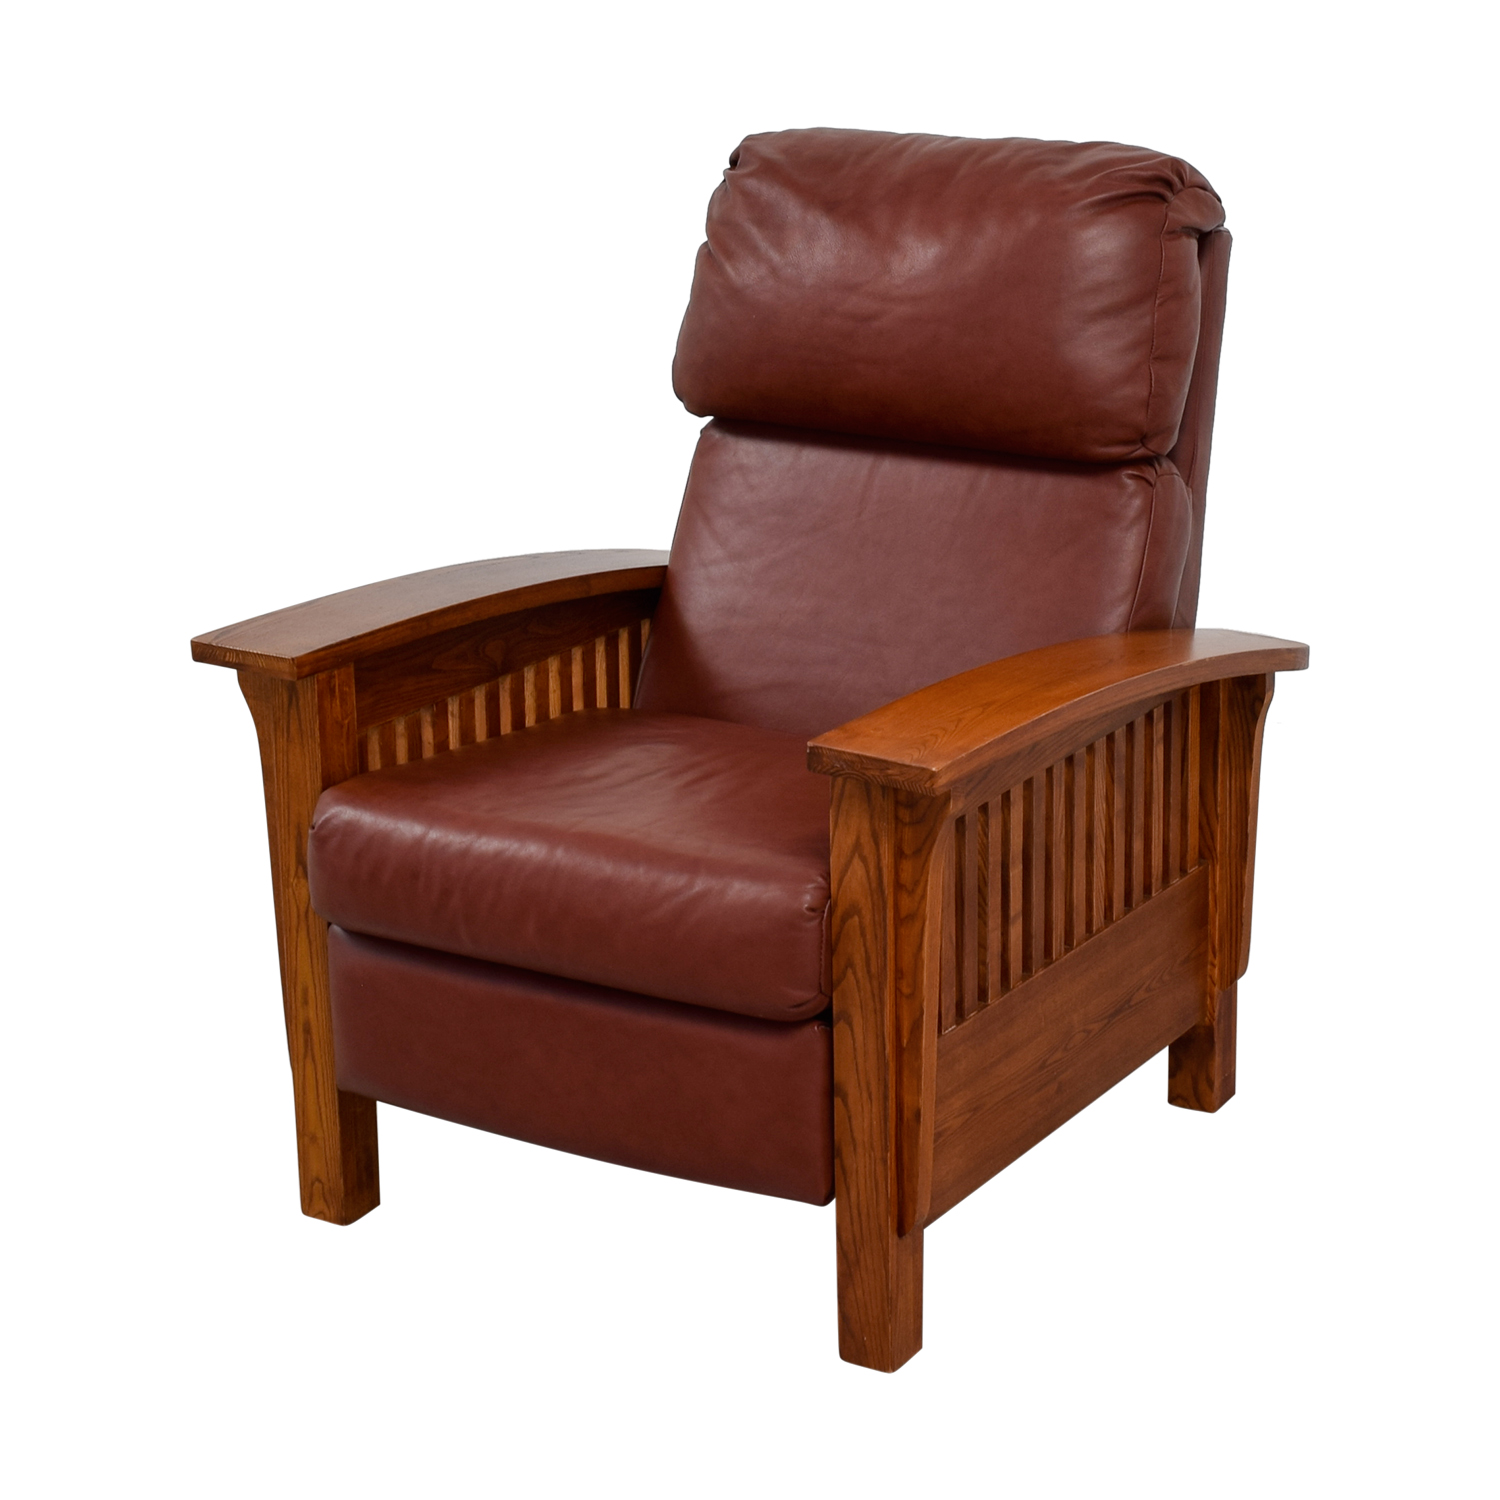 Macy's Brown Leather and Wood Recliner / Chairs